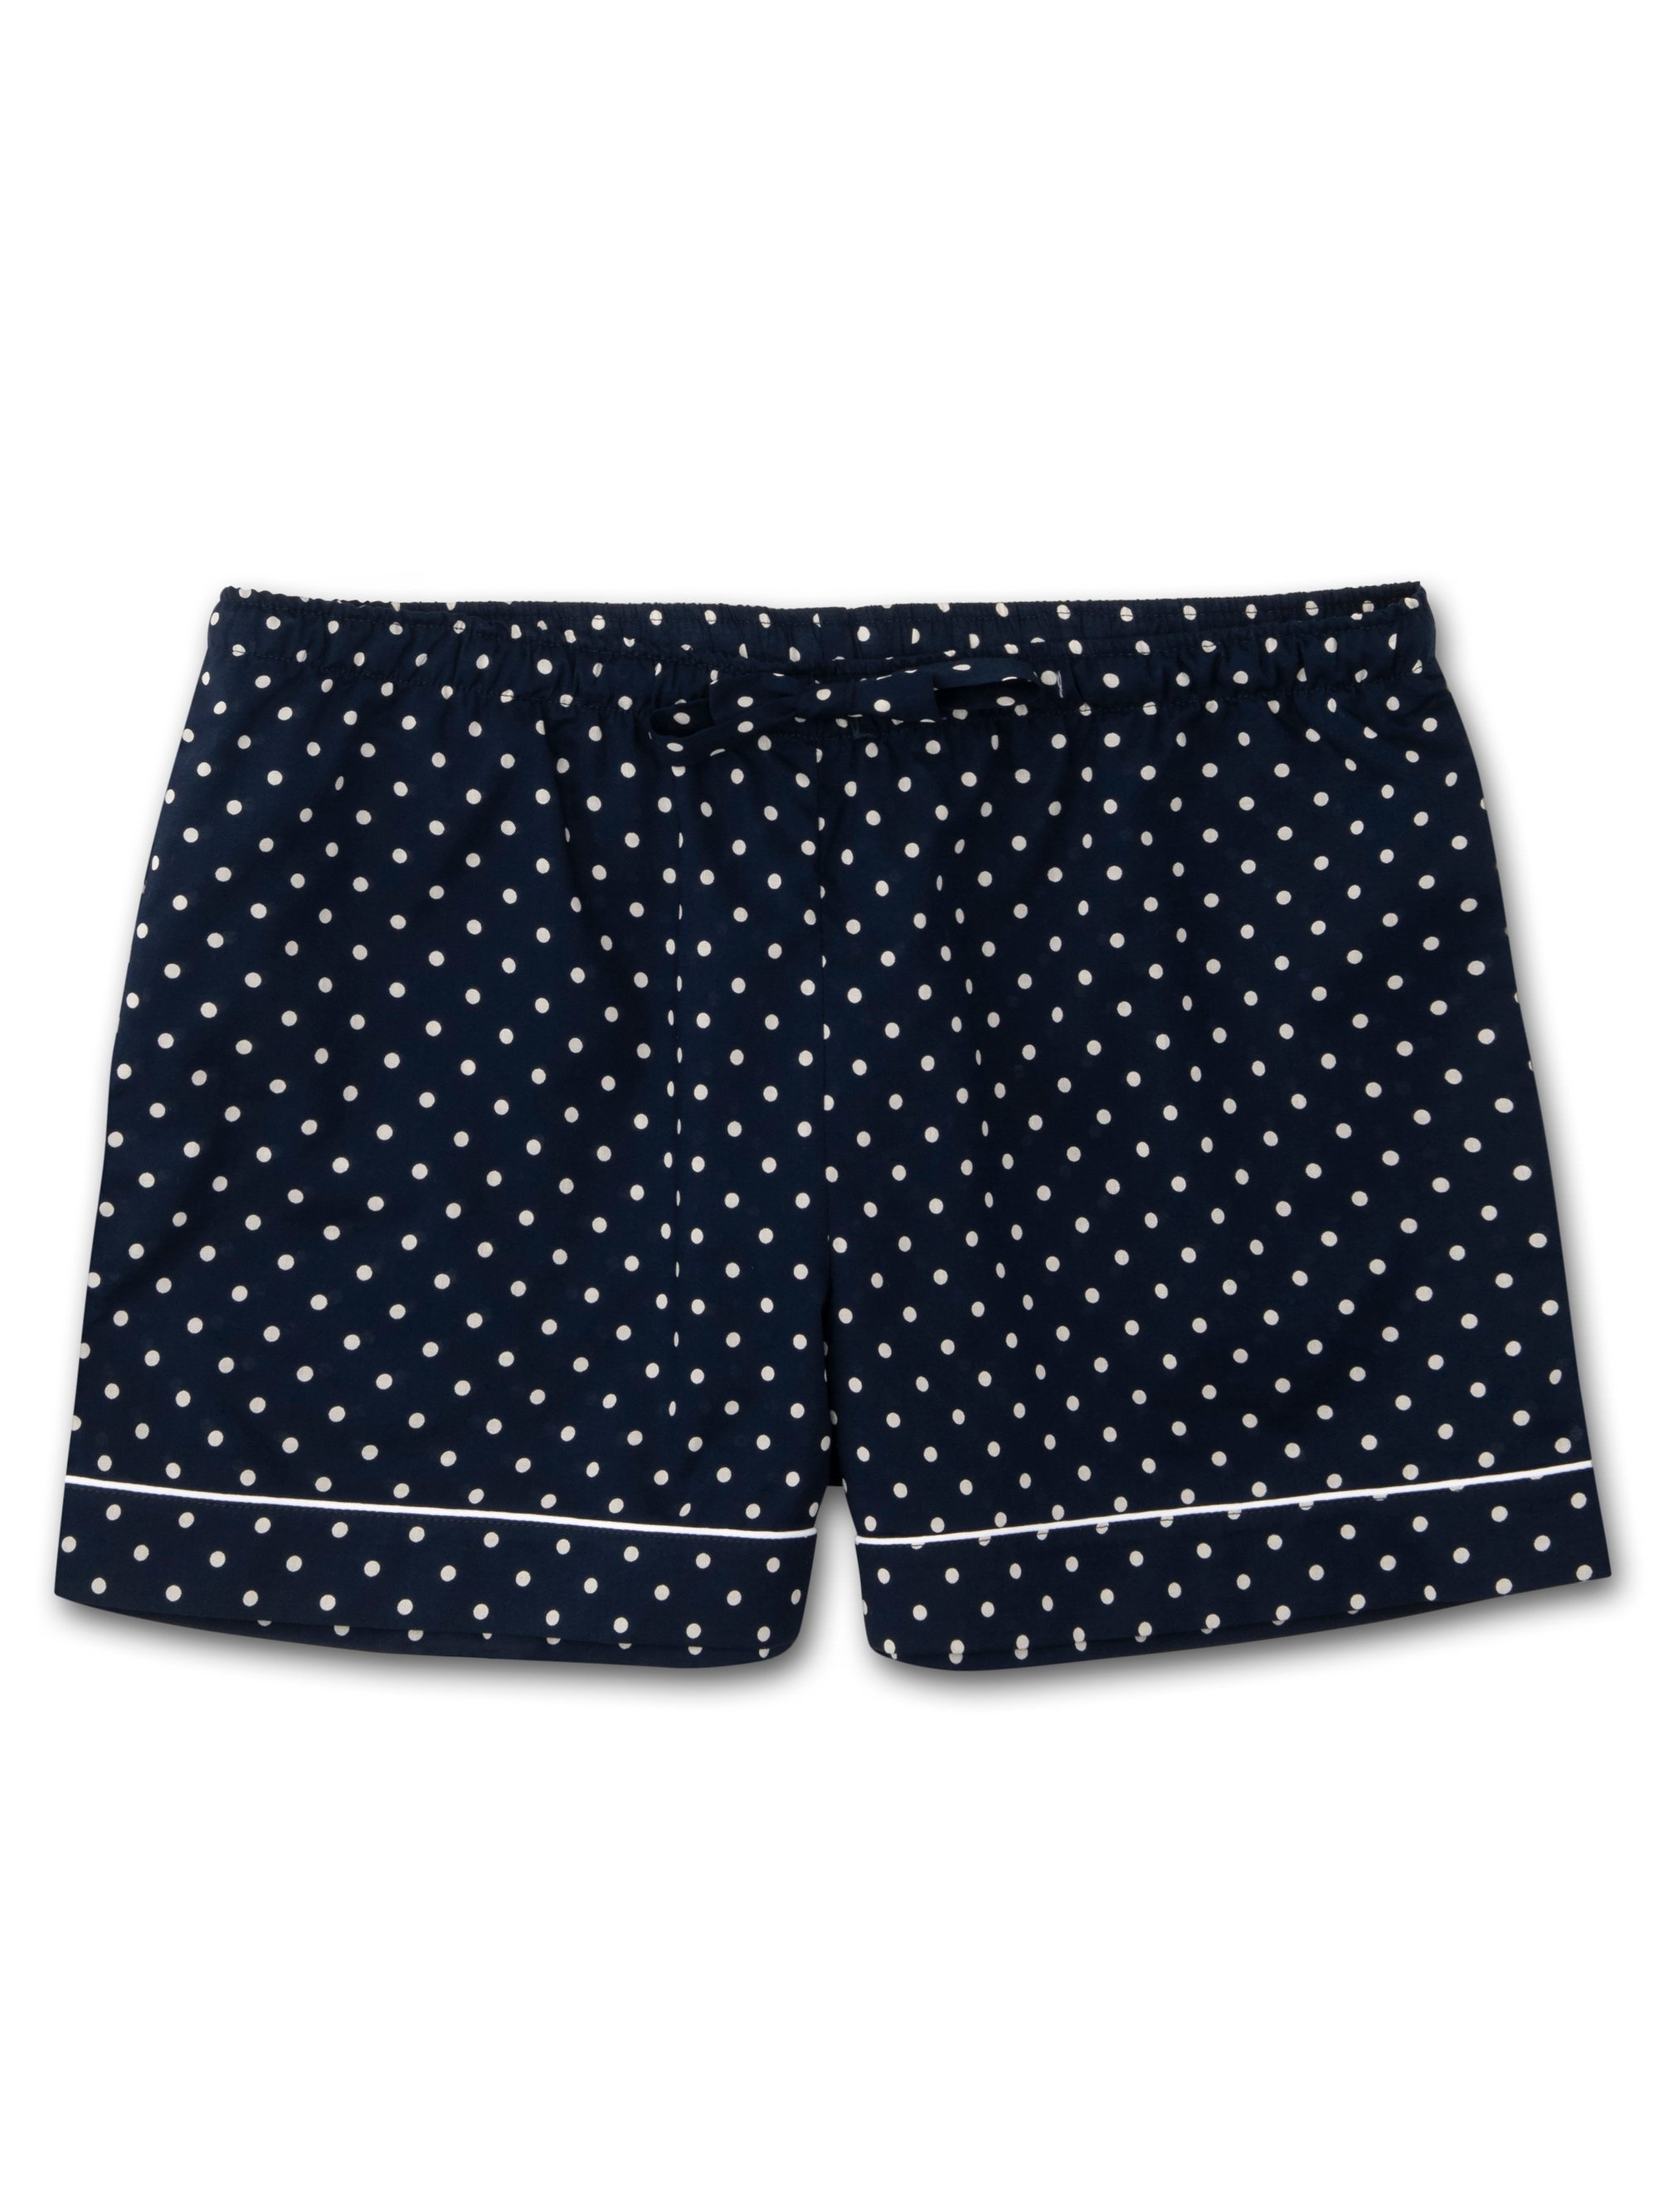 Women's Lounge Shorts Plaza 60 Cotton Batiste Navy